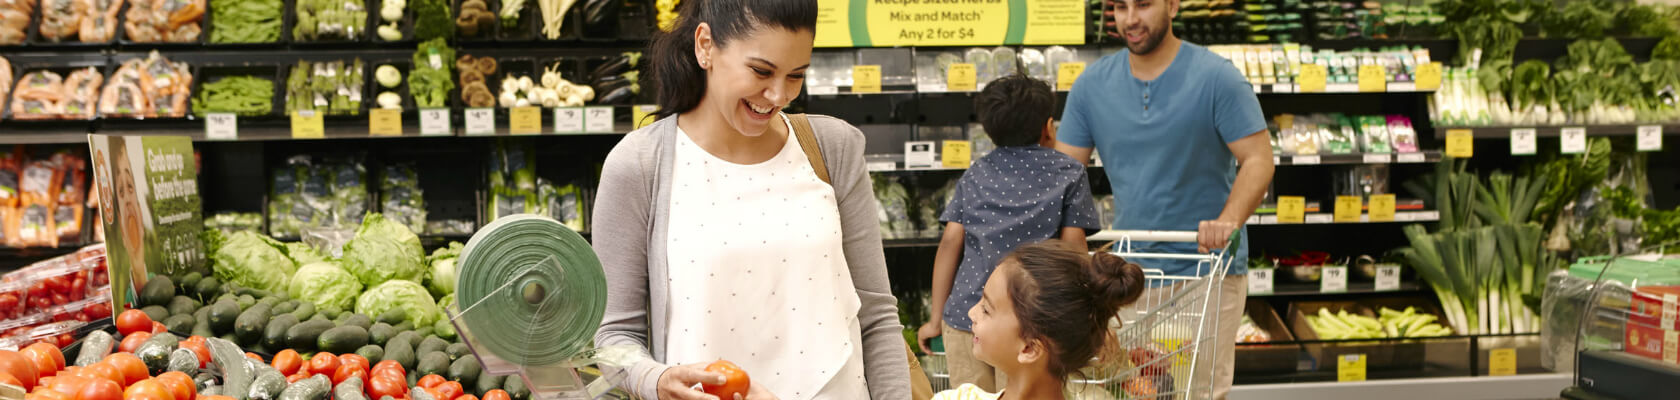 NEW2_FamilyGroceryShopping_header